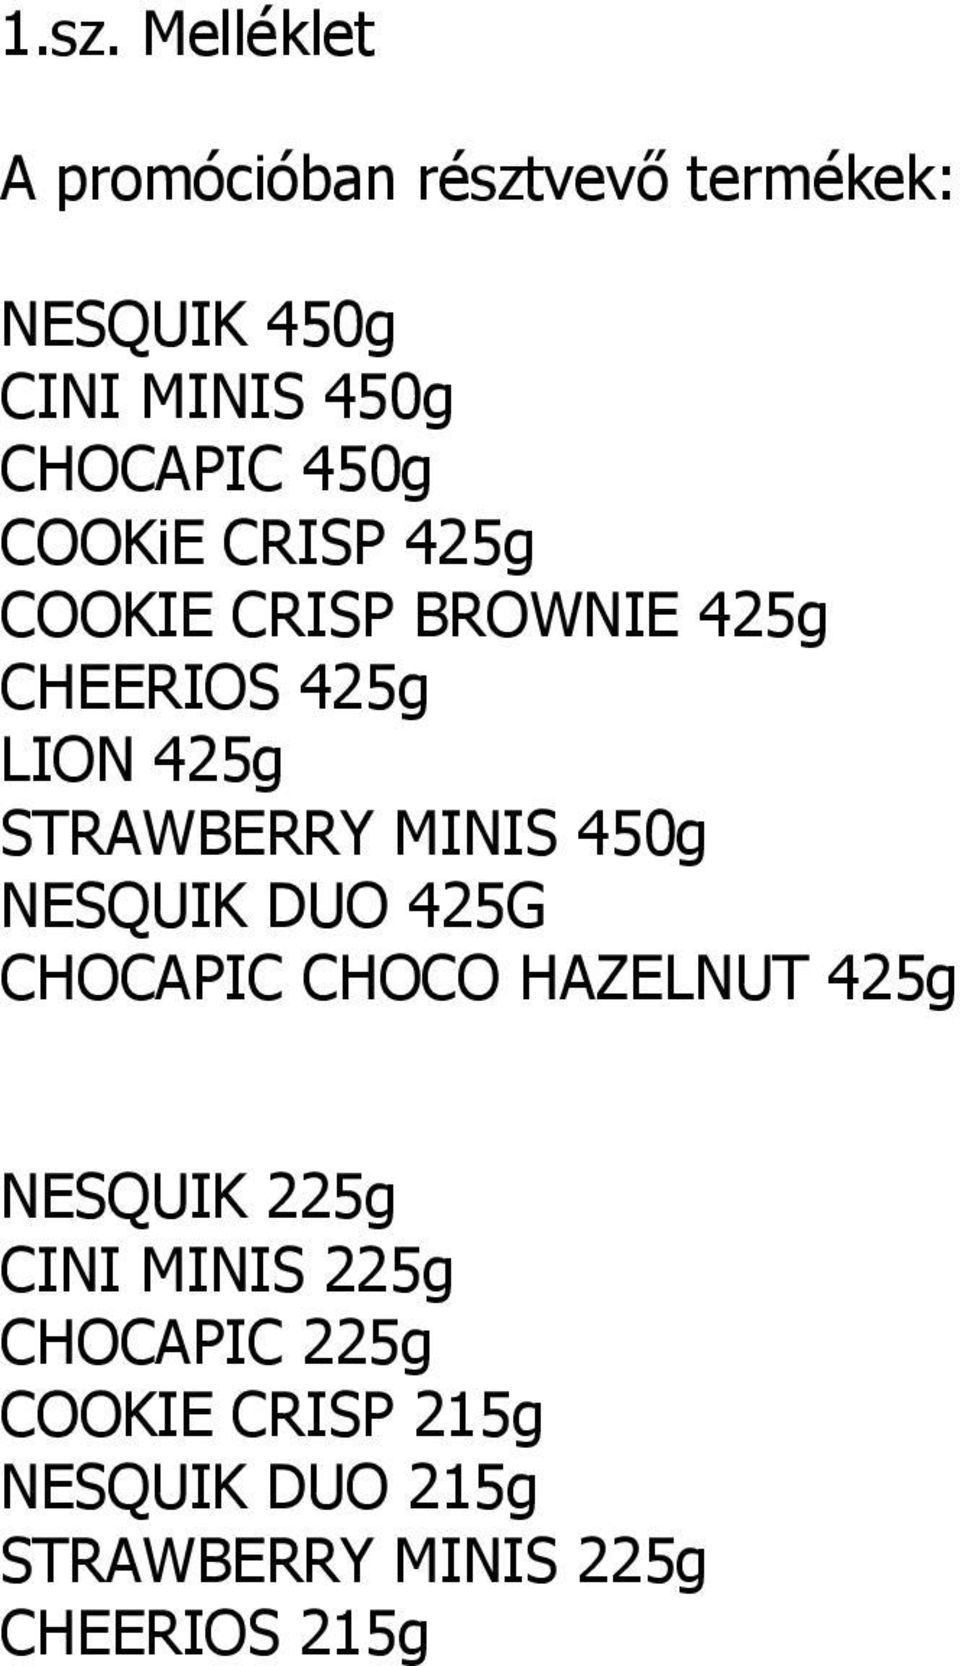 STRAWBERRY MINIS 450g NESQUIK DUO 425G CHOCAPIC CHOCO HAZELNUT 425g NESQUIK 225g CINI